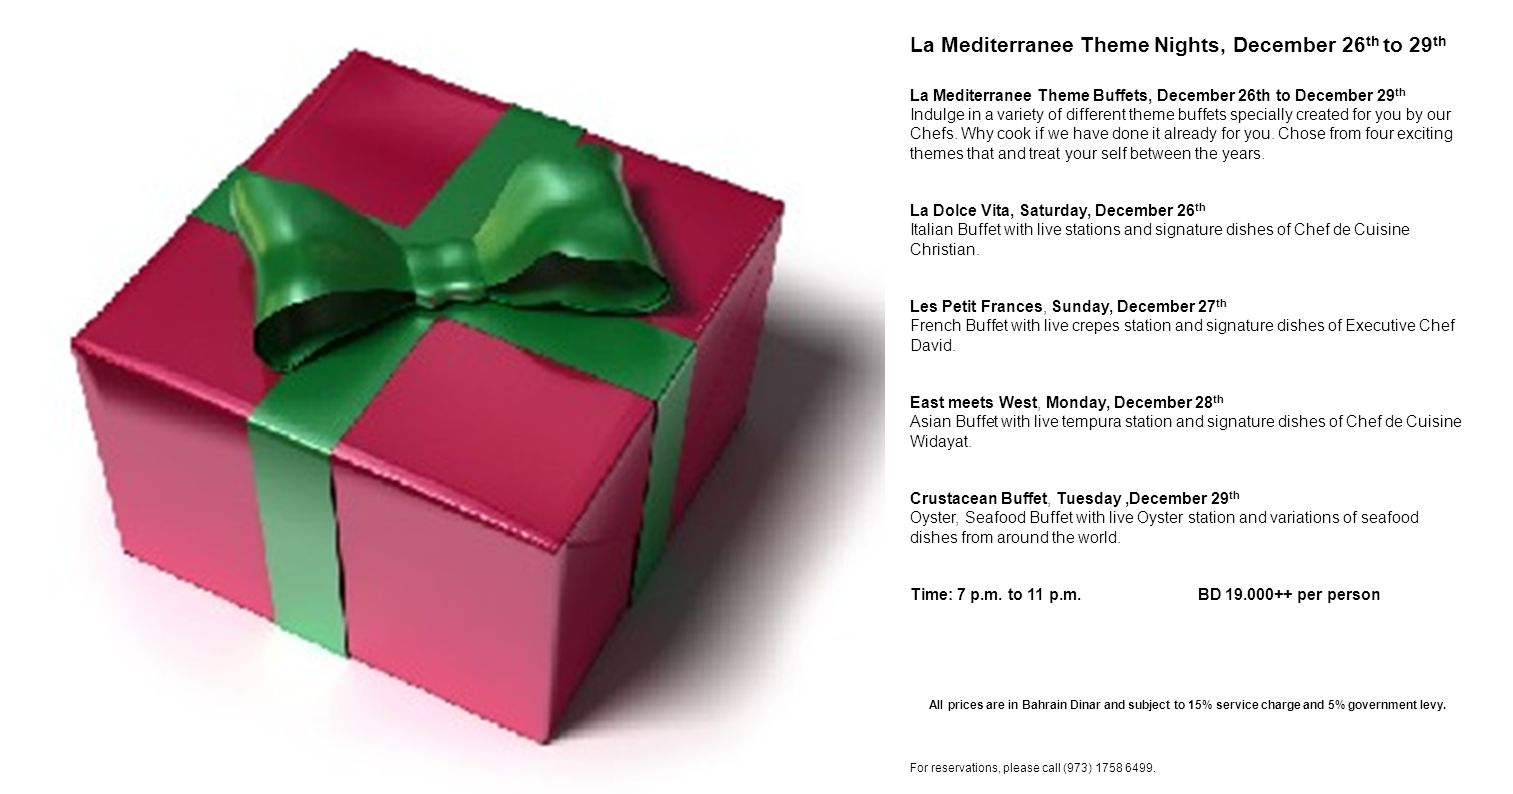 La Mediterranee Theme Nights, December 26 th to 29 th La Mediterranee Theme Buffets, December 26th to December 29 th Indulge in a variety of different theme buffets specially created for you by our Chefs.